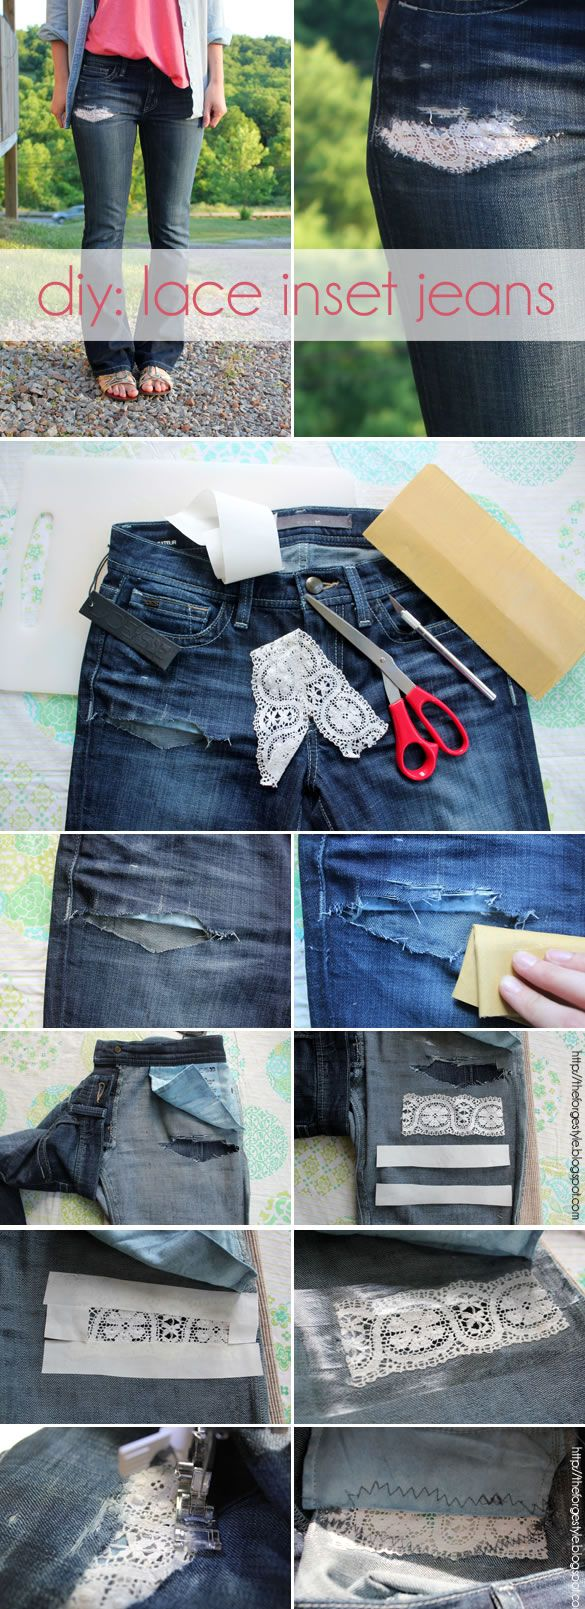 DIY: Lace inset jeans...so cute